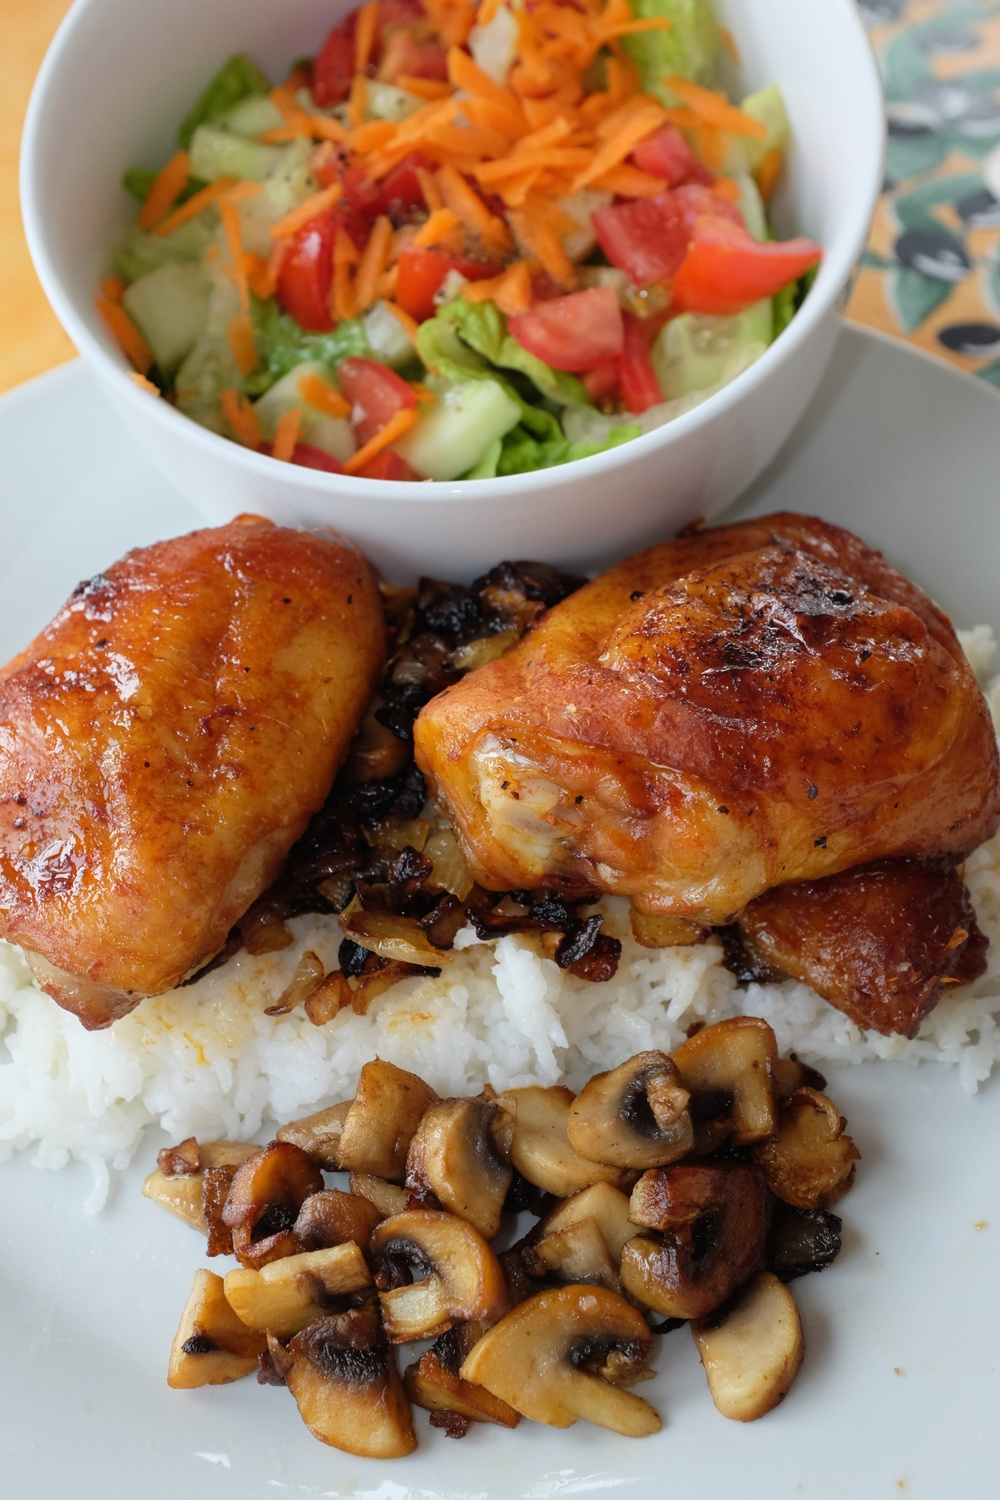 Chicken thighs baked in the oven atop rice with a side of mushrooms + a side salad